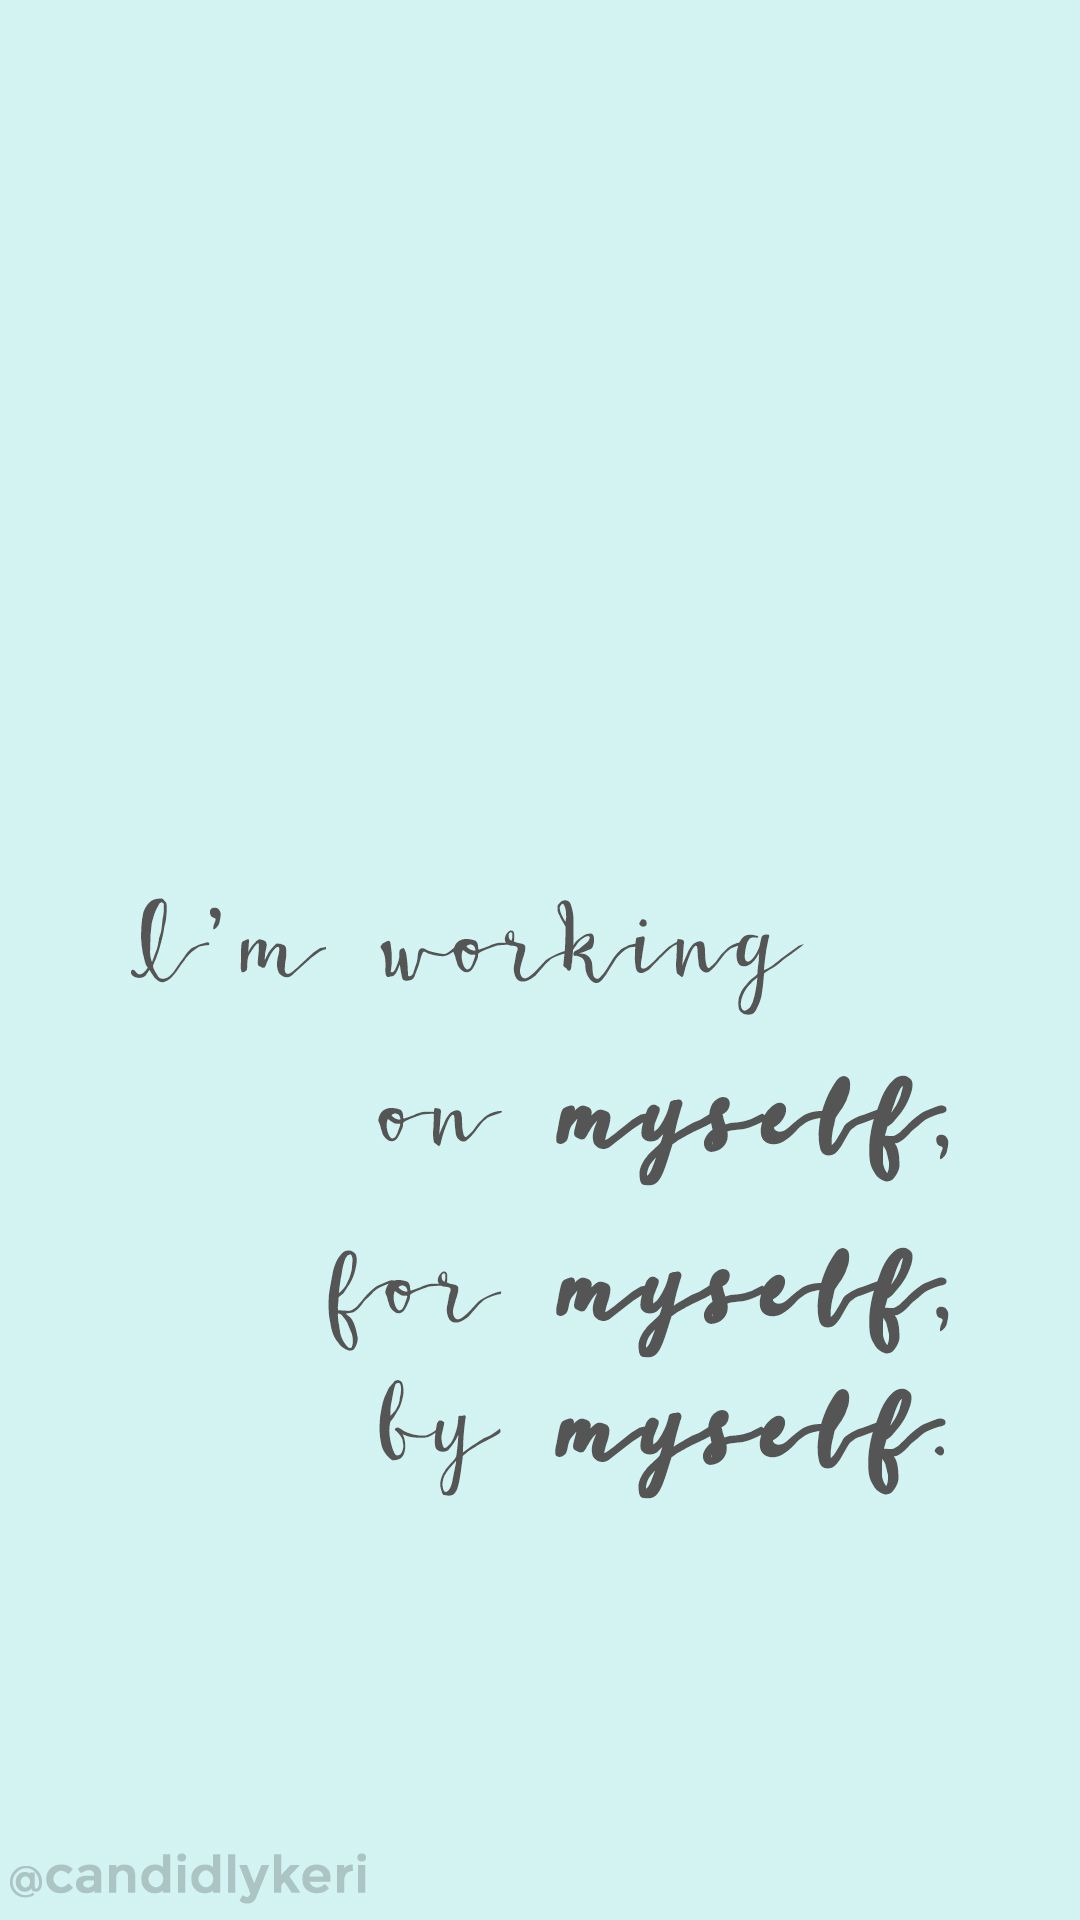 im working on myself by myself for myself motivation inspirational quote wallpaper android